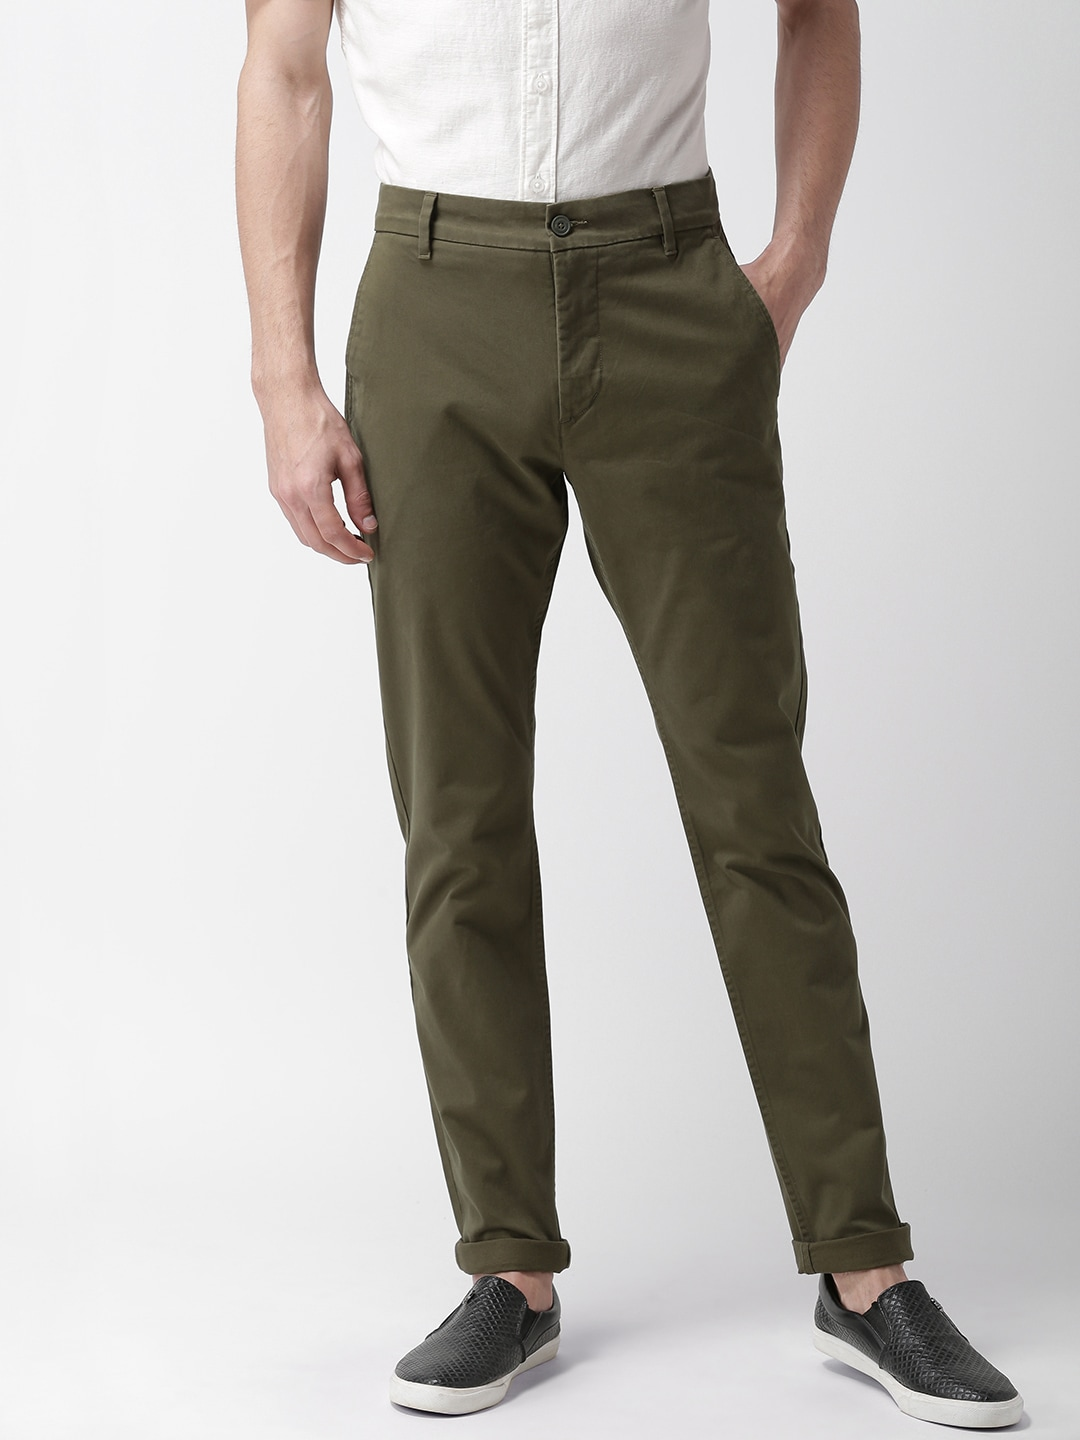 Men Chinos Buy For Online In India Myntra Premium Shop Chino Black Original